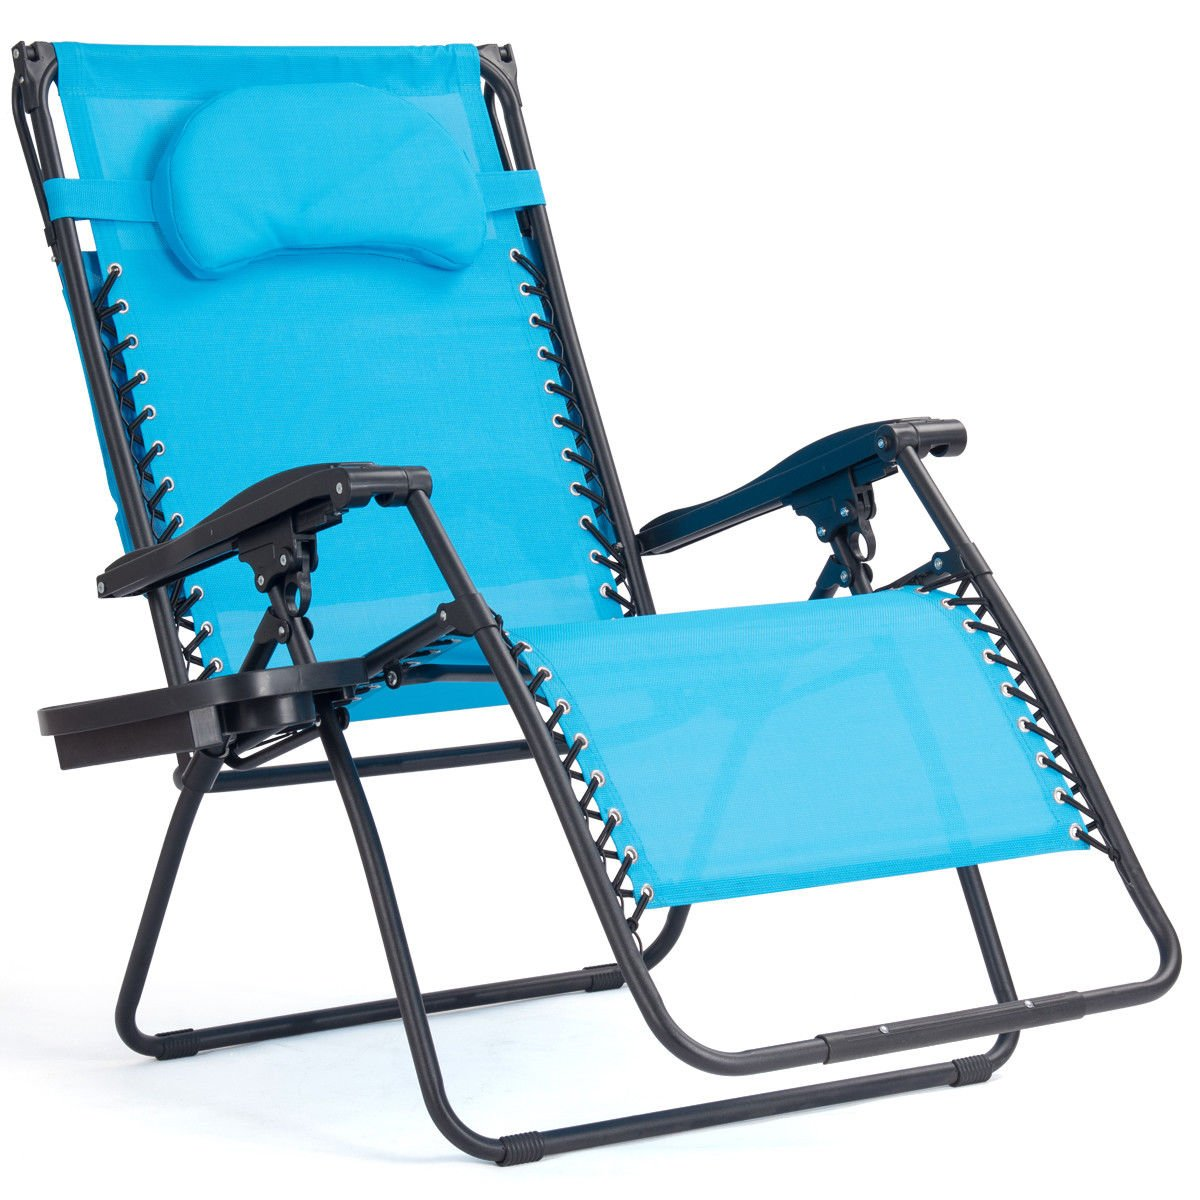 14th Mobility Folding Recliner Lounge Chair in Blue Cup Holder, Made Steel Frame, Sun Shade Canopy, Lightweight Easy Transporting, Sturdy Durable + Expert Guide